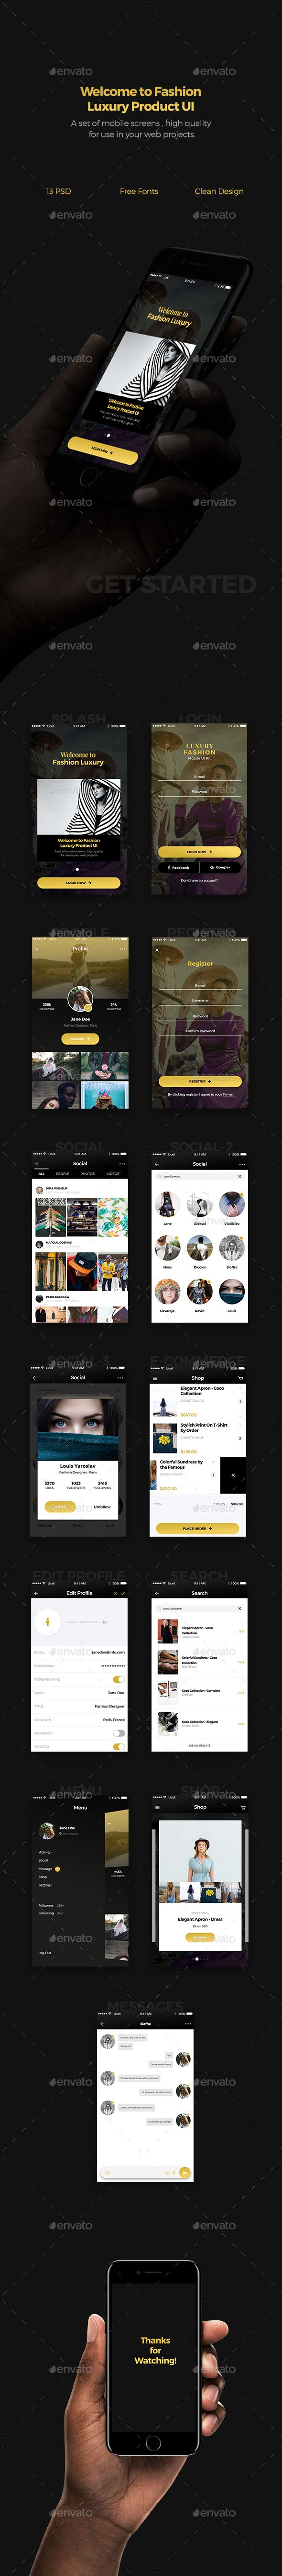 Fashion Luxury Product Mobile UI UIX Design Template - User Interfaces Web Elements Design Template PSD. Download here: https://graphicriver.net/item/fashion-luxury-product-mobile-ui/19046038?ref=yinkira